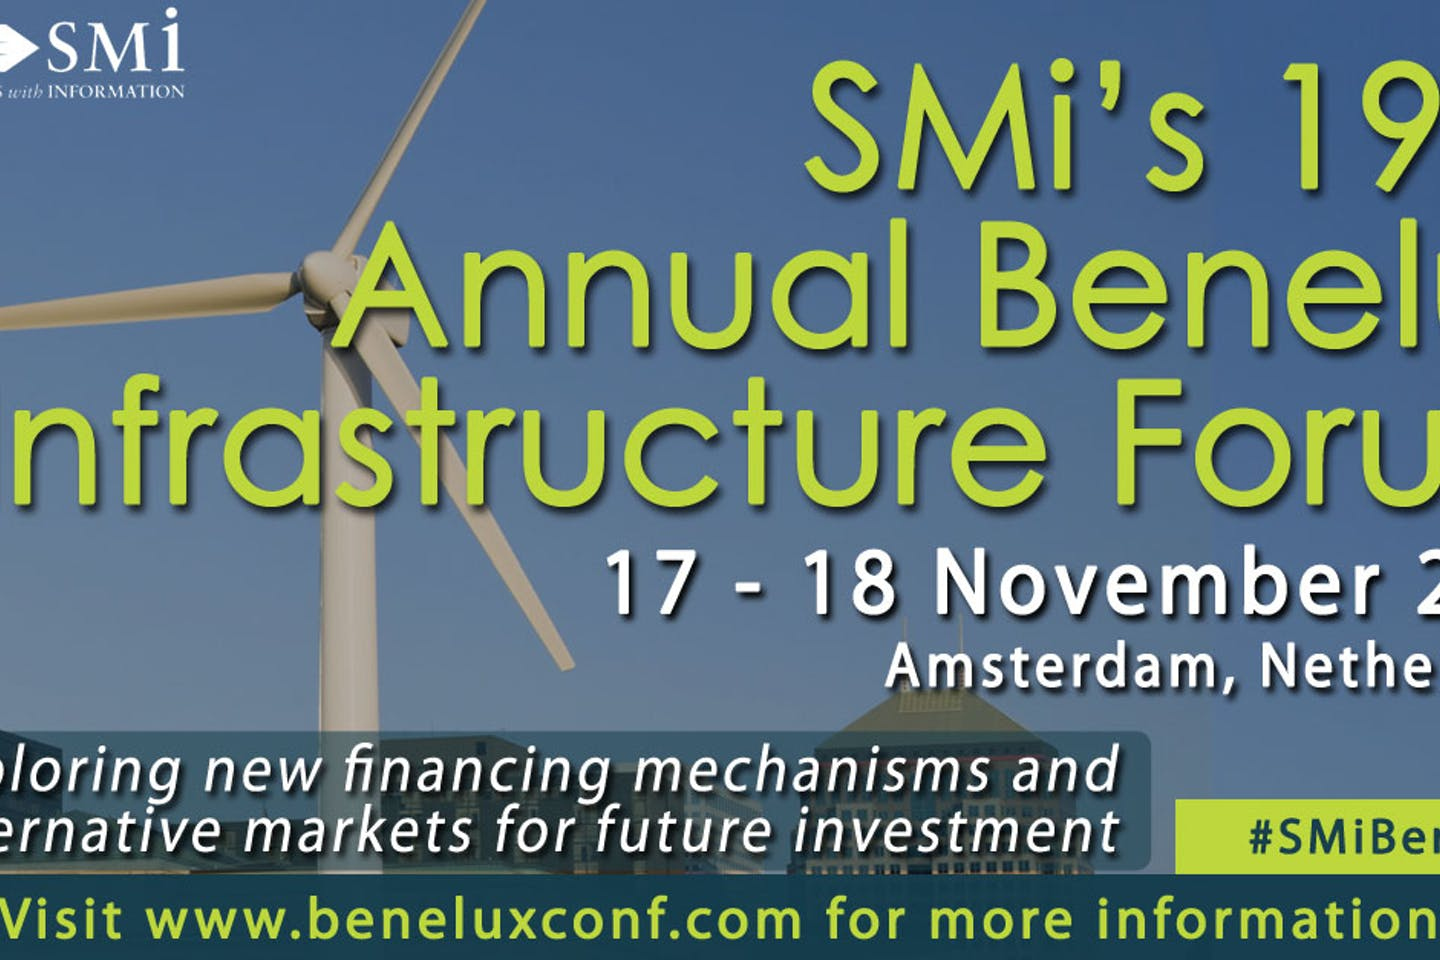 SMi's 19th Annual Benelux Infrastructure Forum